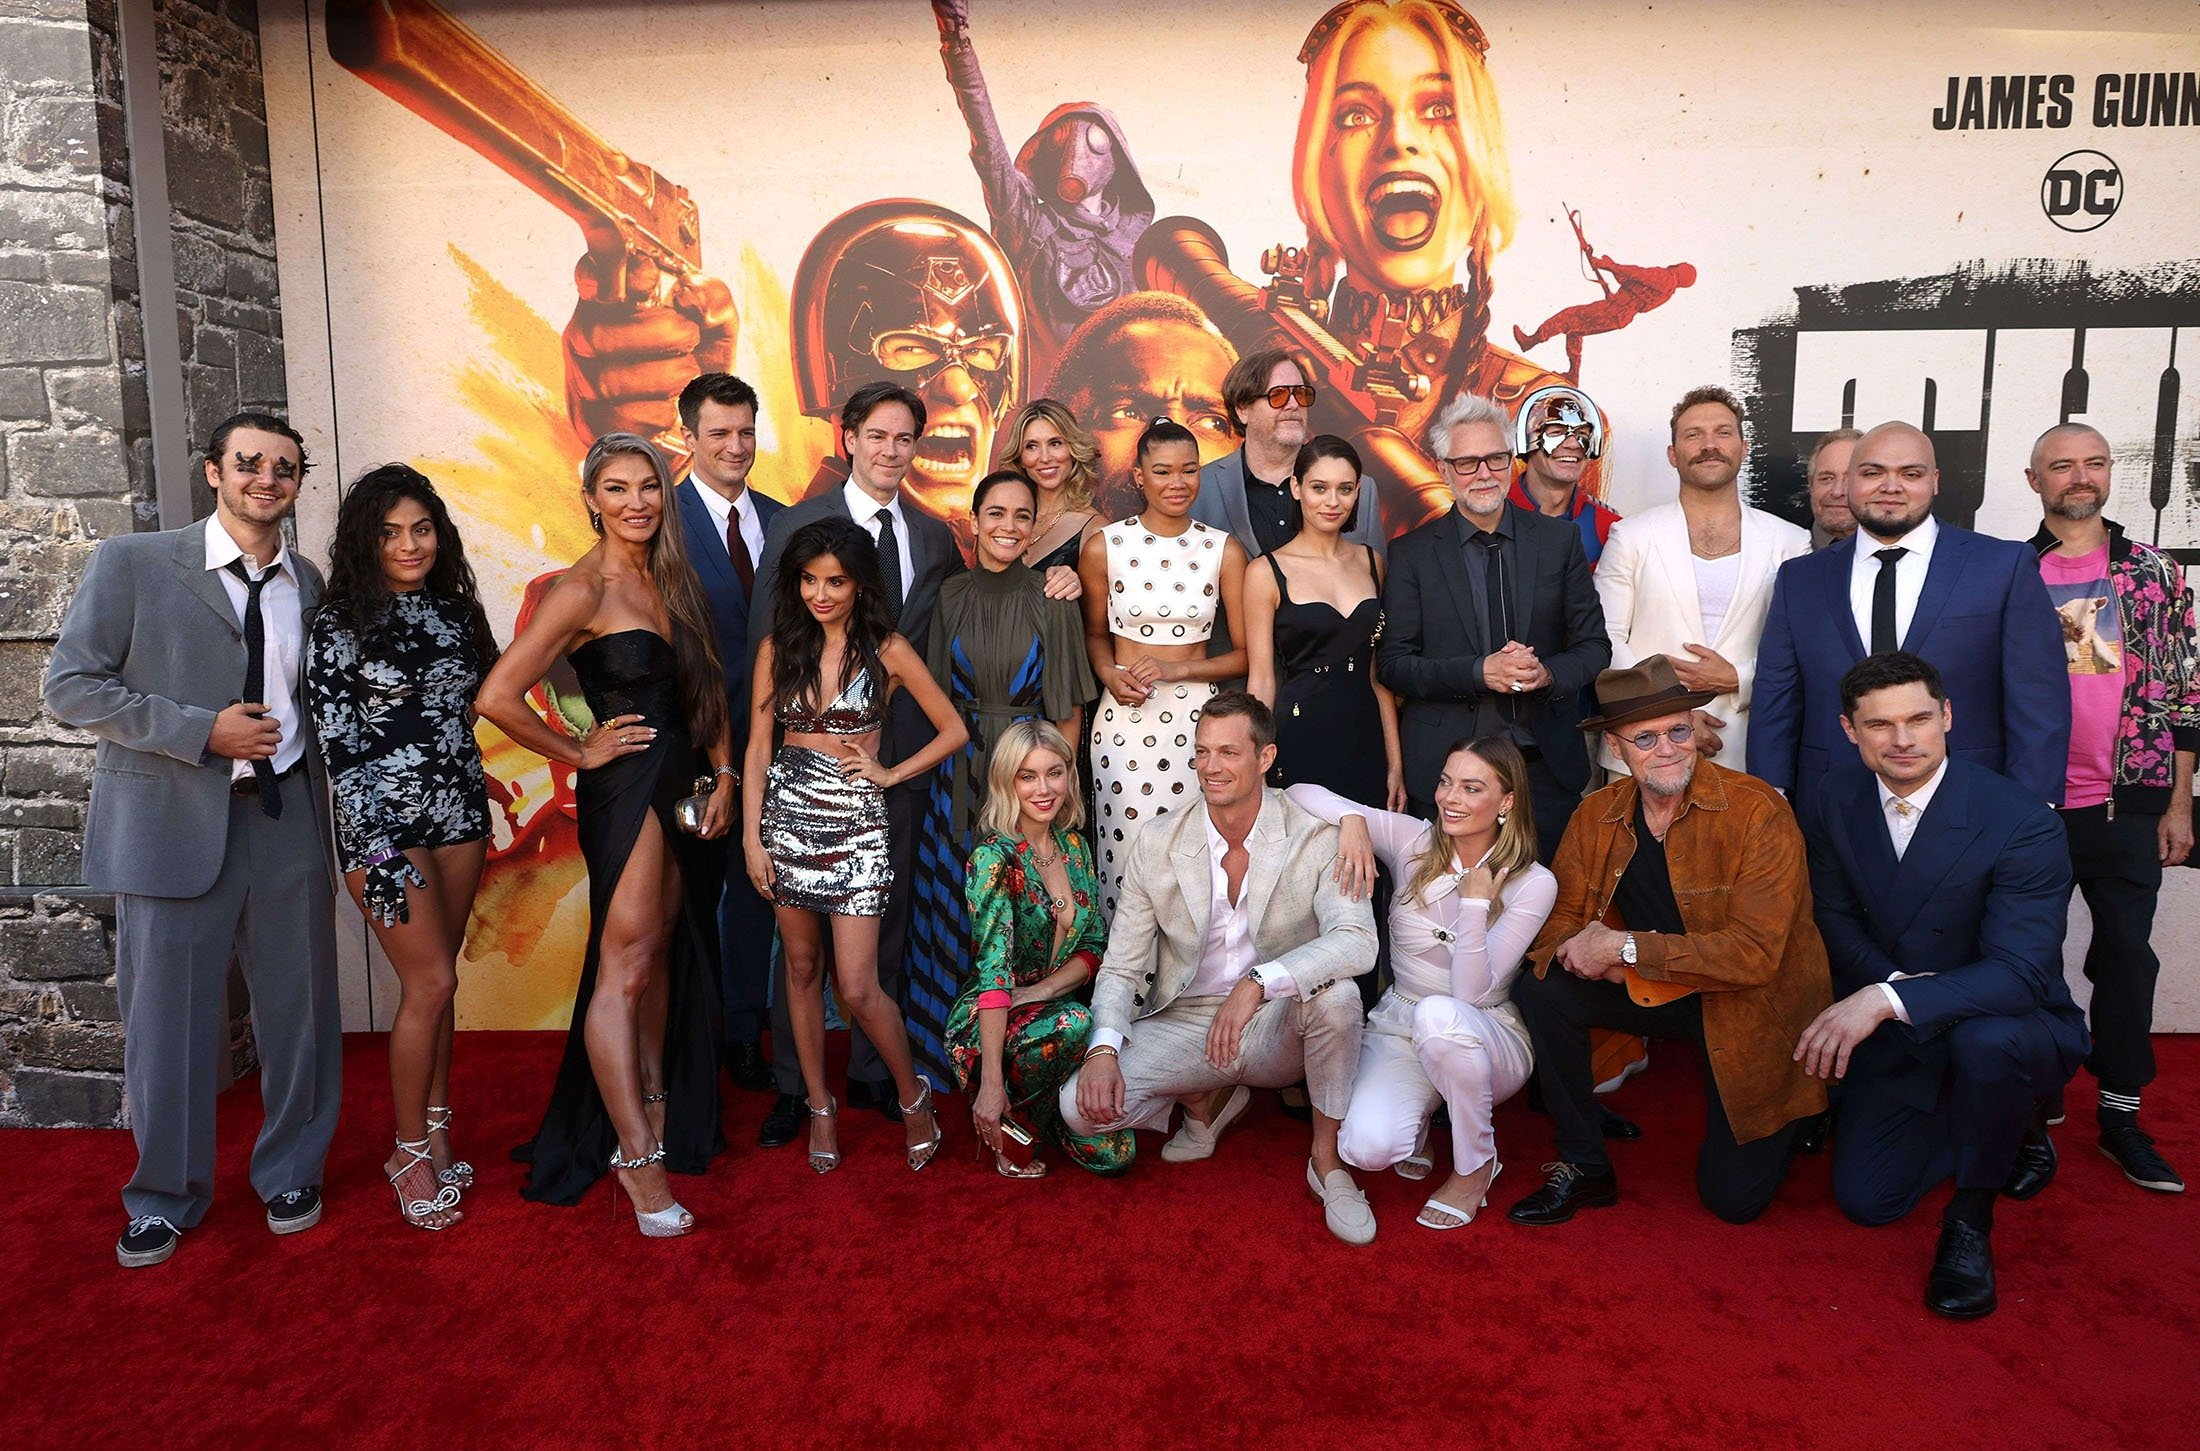 Cast and crew including Nathan Fillion, Storm Reid, Margot Robbie, John Cena, James Gunn, Michael Rooker, Jai Courtney, and Daniela Melchior attend the Warner Bros. premiere of 'The Suicide Squad' at Regency Village Theatre in Los Angeles, California, U.S., Aug. 2, 2021. (AFP Photo)